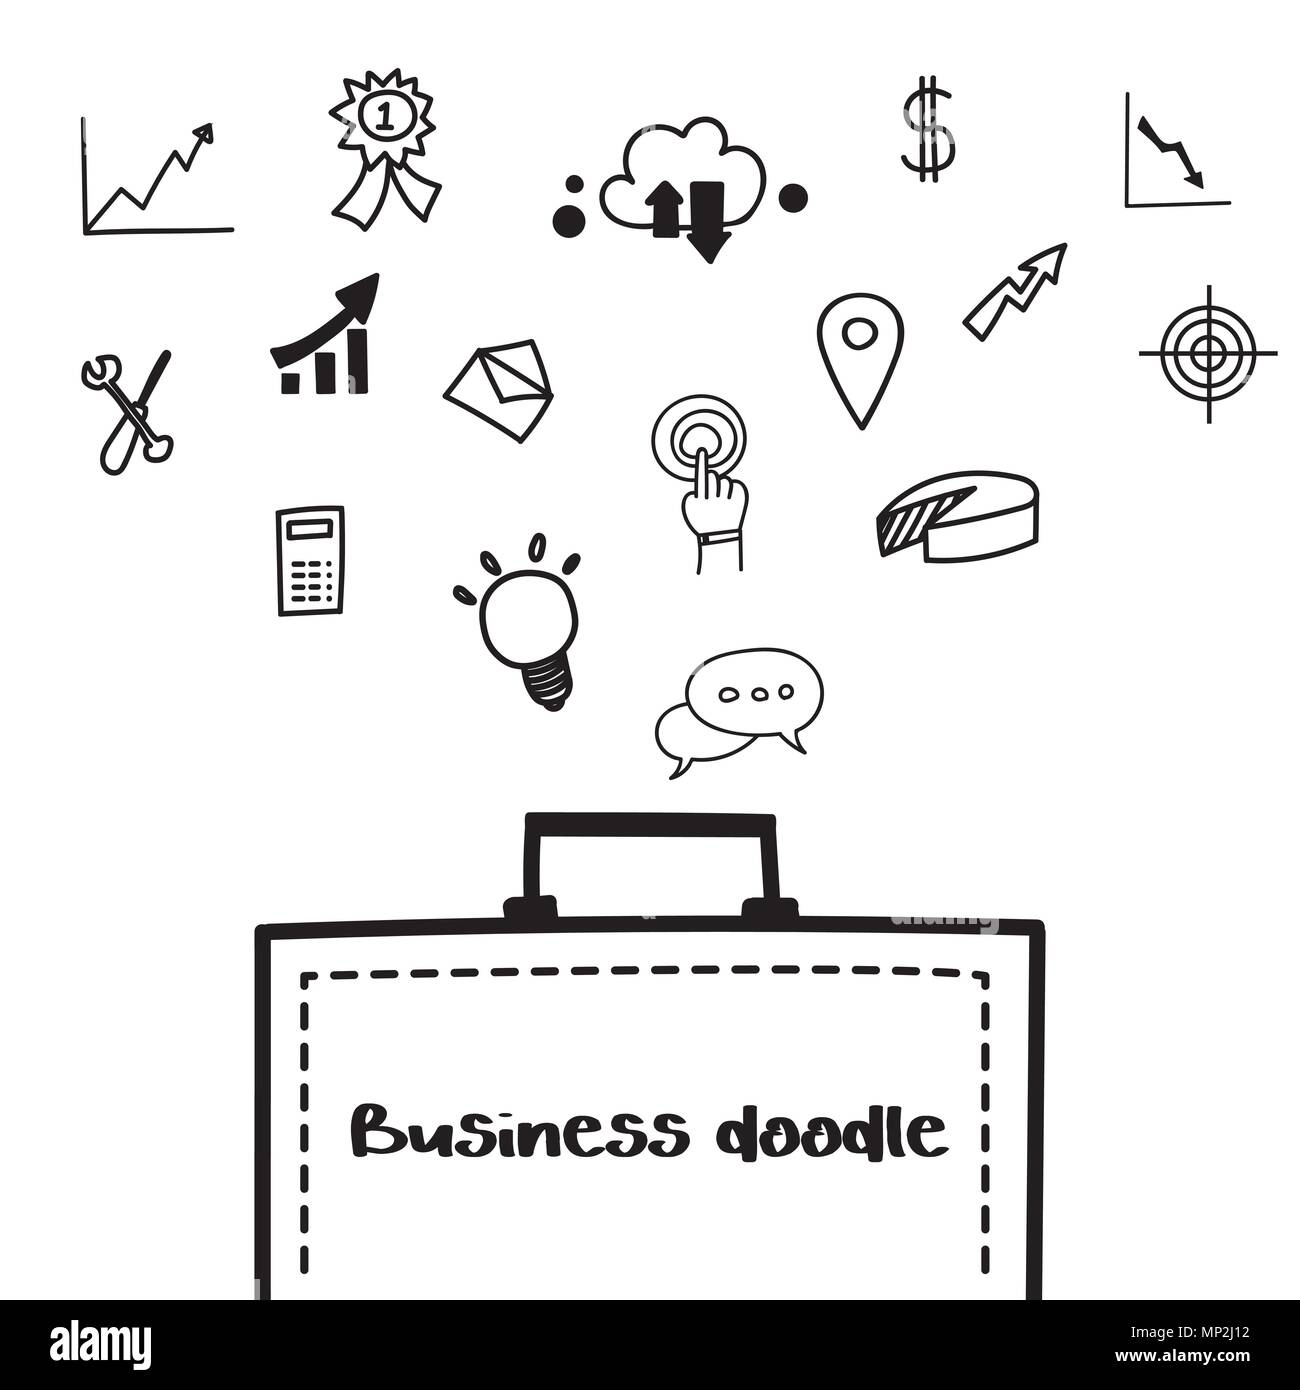 Business doodle icon design element template on white background ...